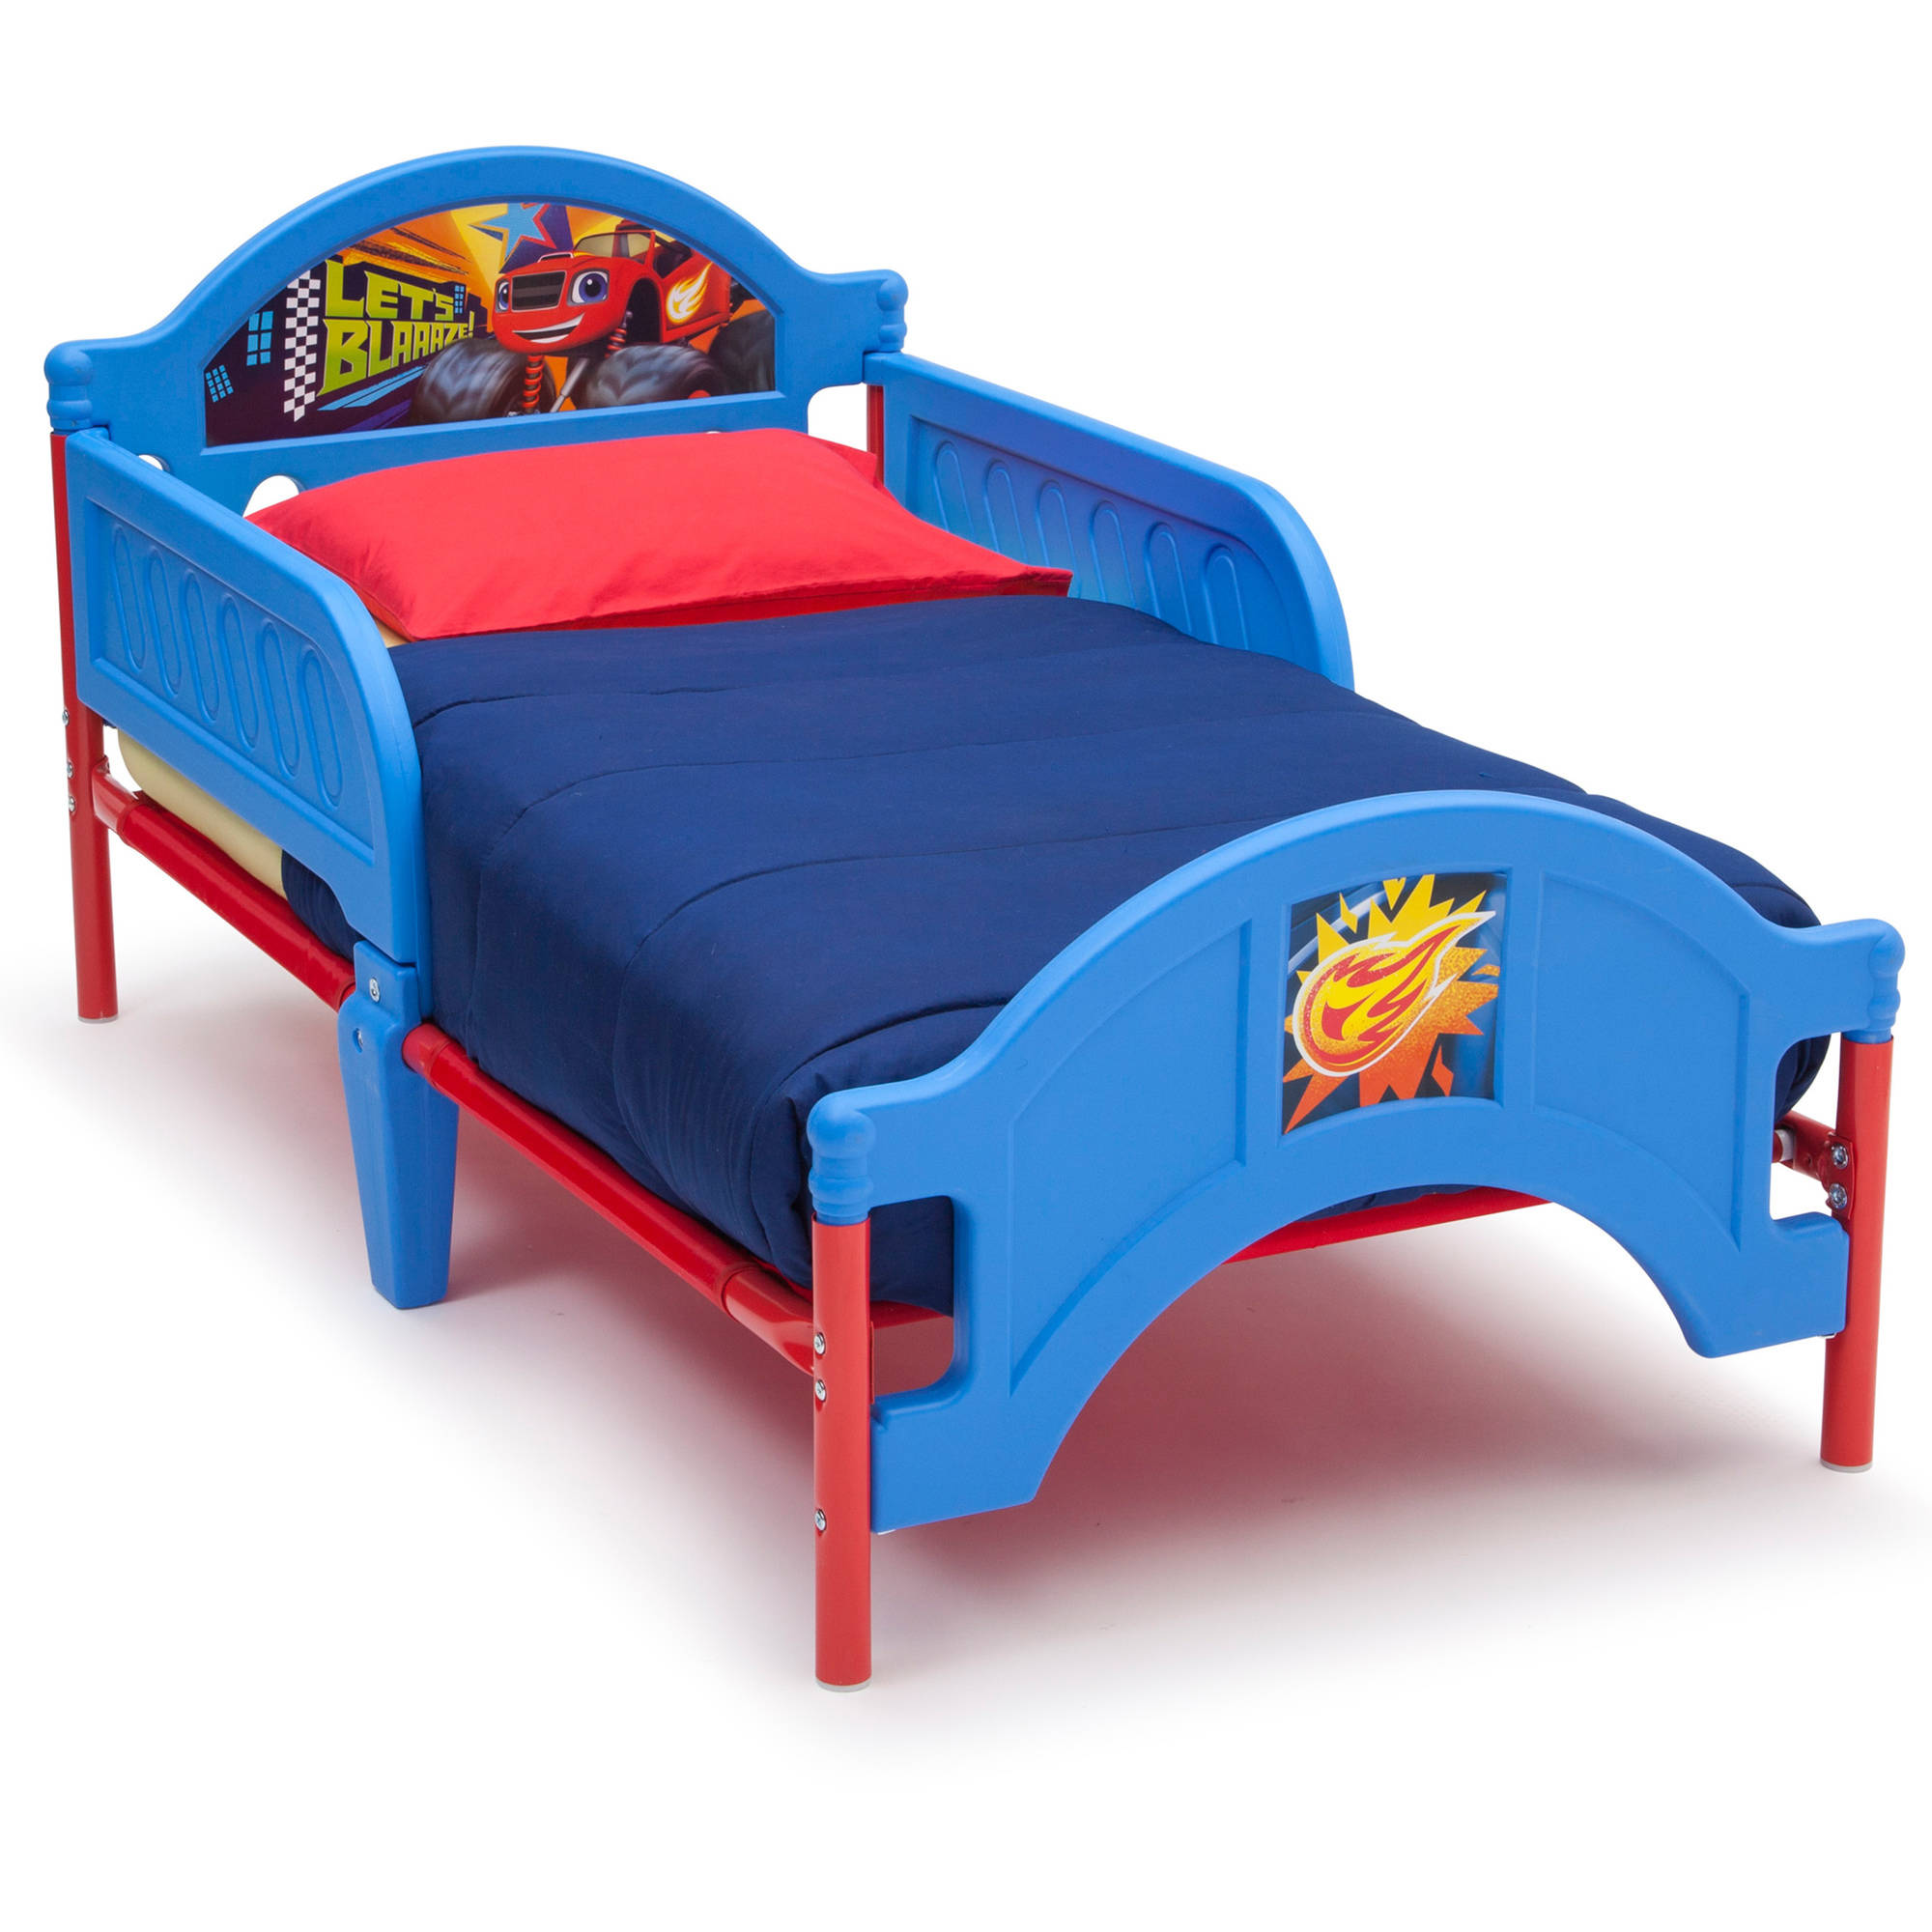 Nick Jr Blaze And The Monster Machines Bedroom Set With Bonus Toy Organizer